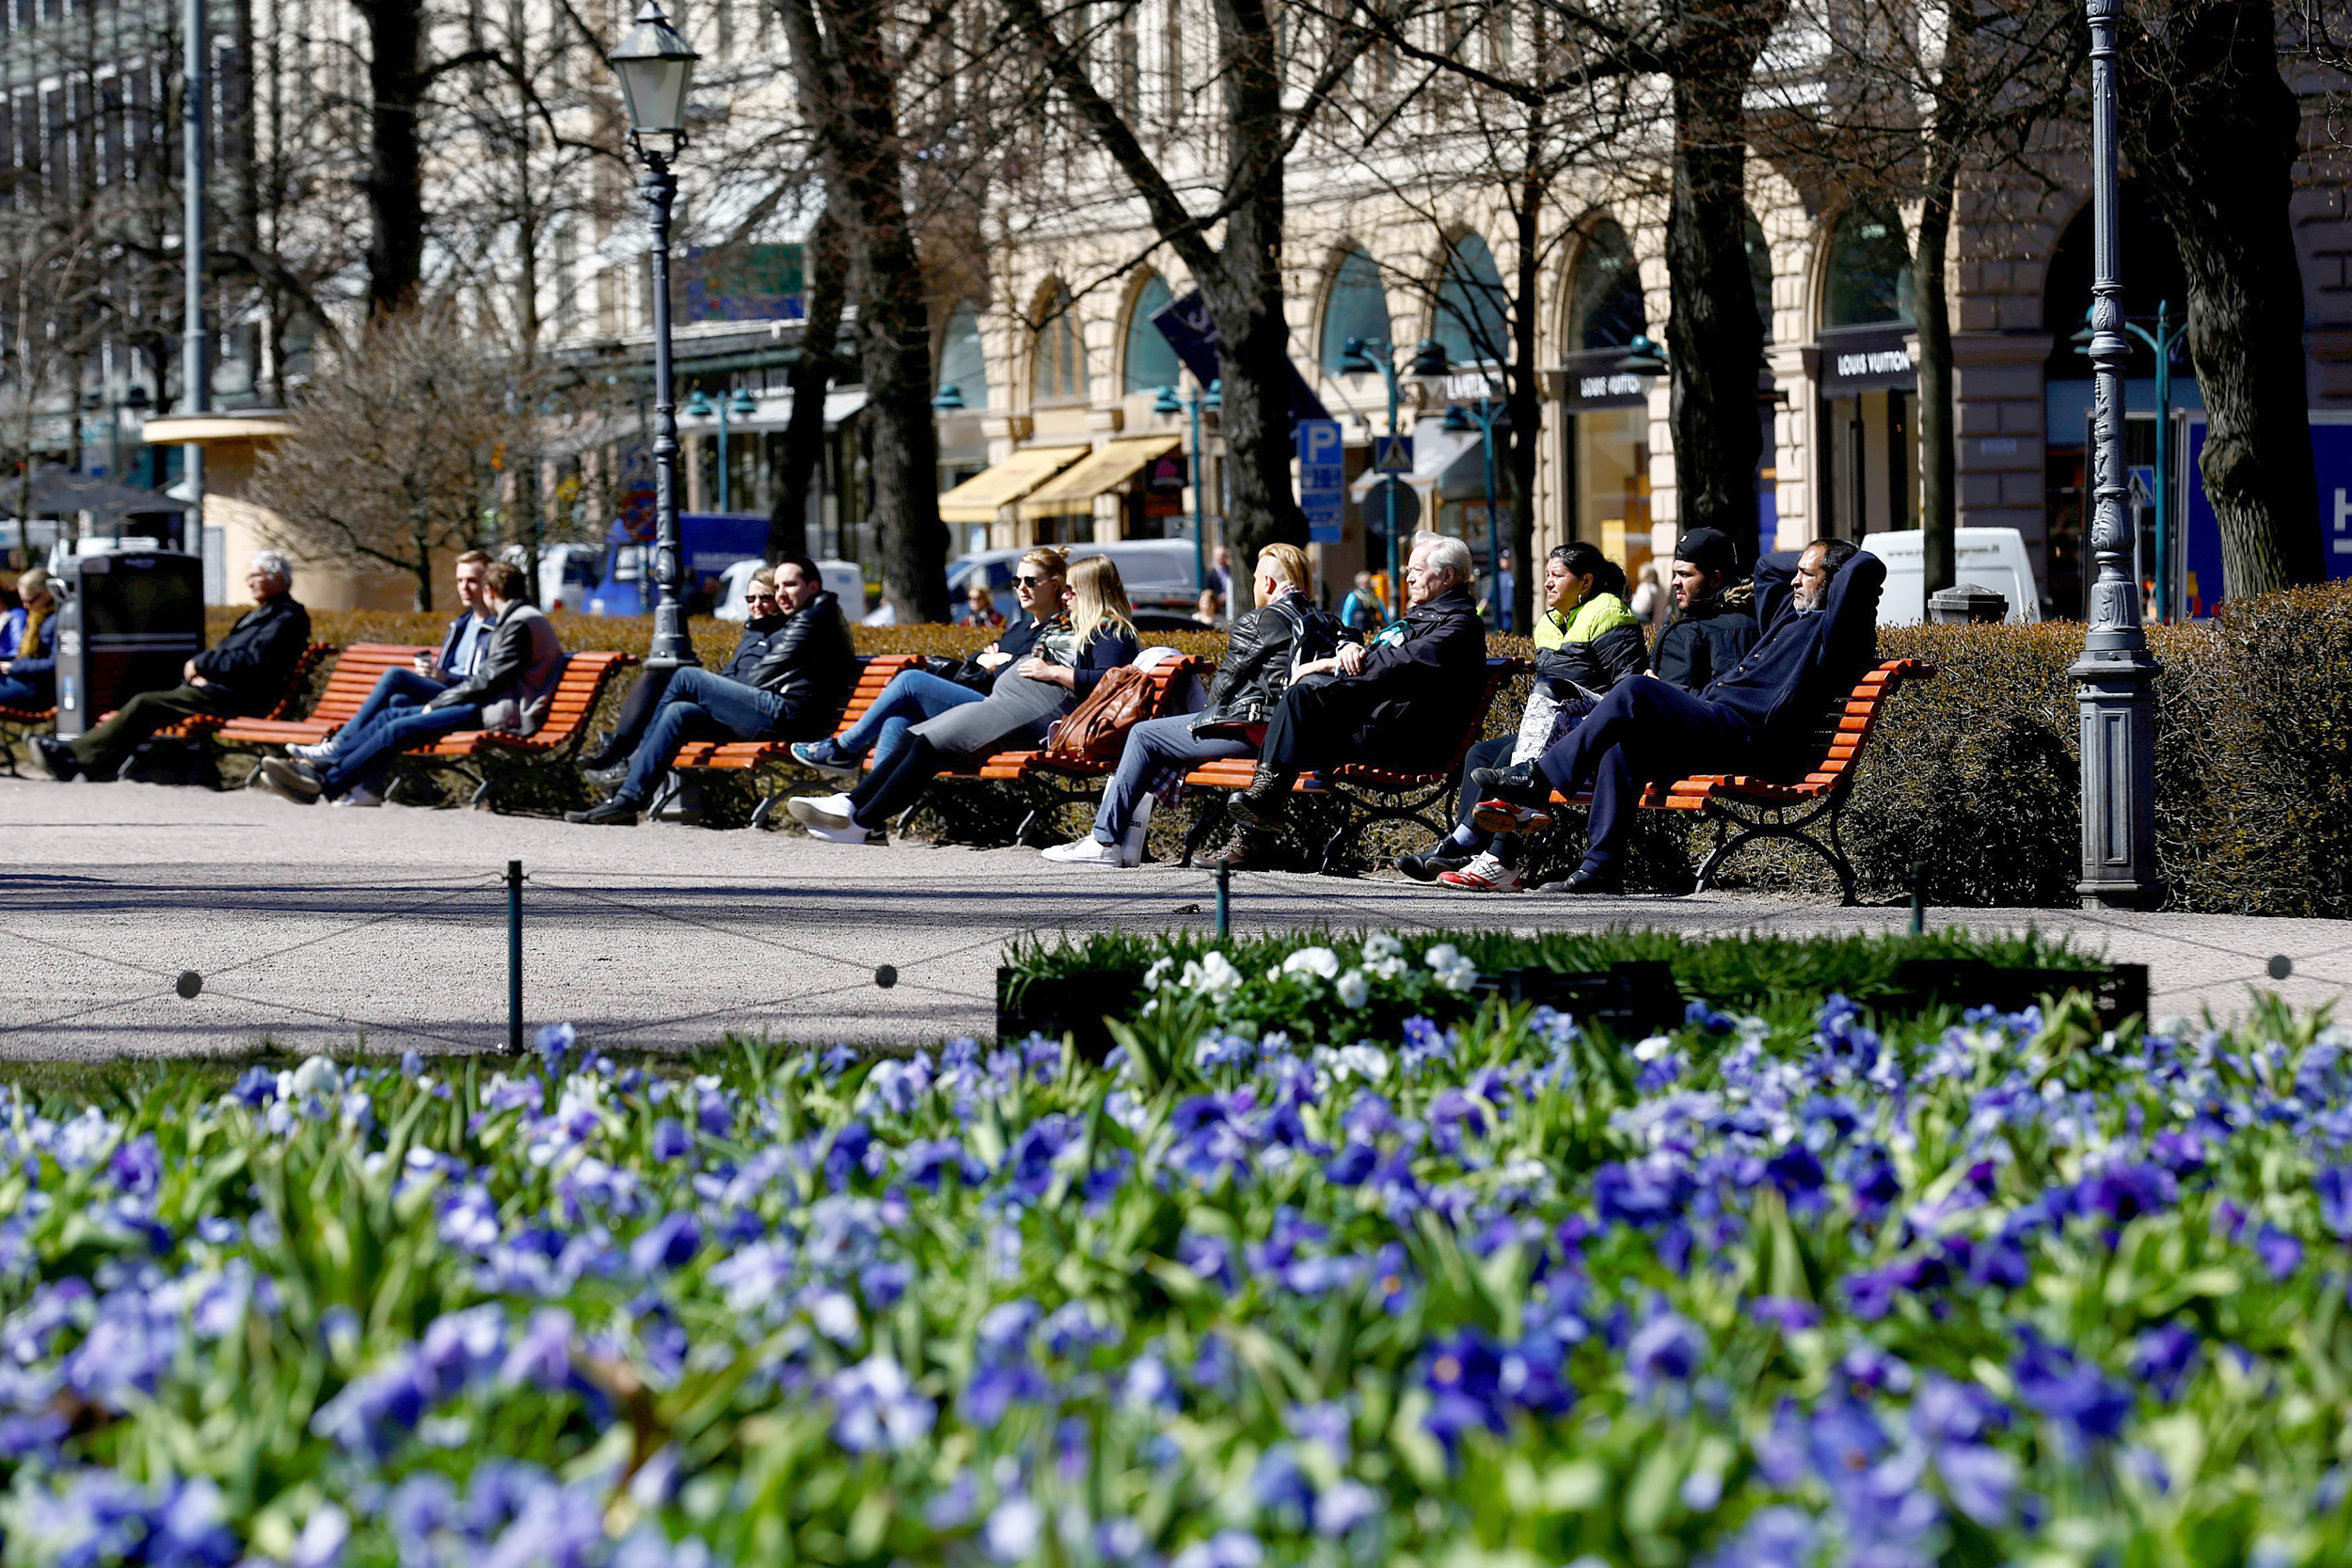 Finland, named world's happiest country, offers 'rent a Finn'